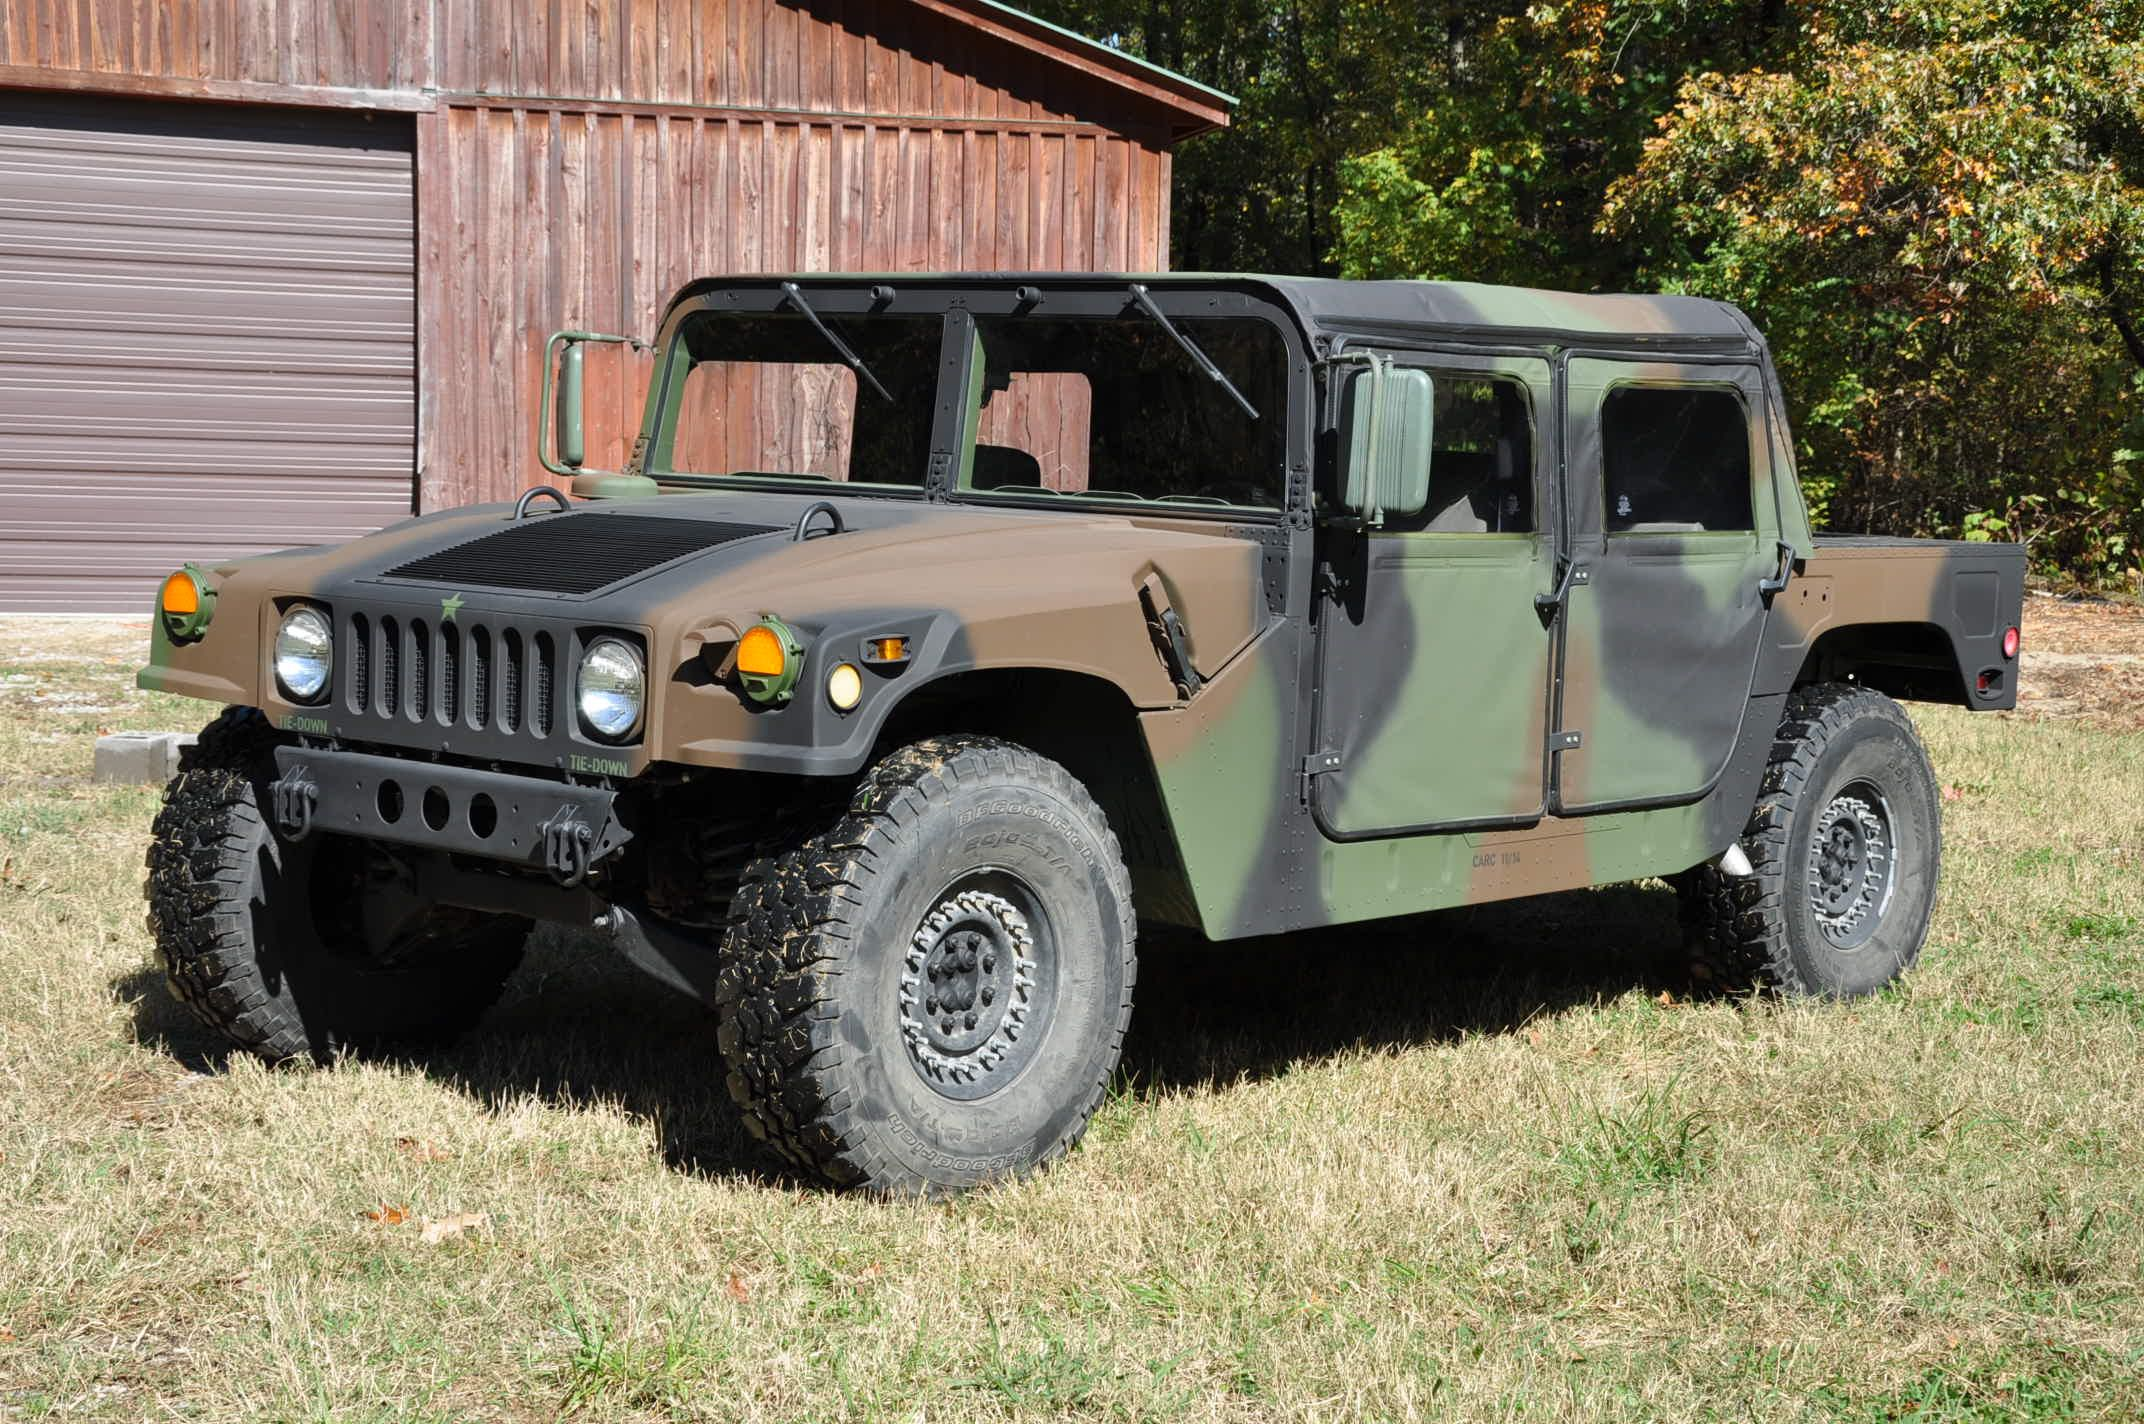 Pin By Barry Gunn On Hmmwv Hummer For Sale Hummer H2